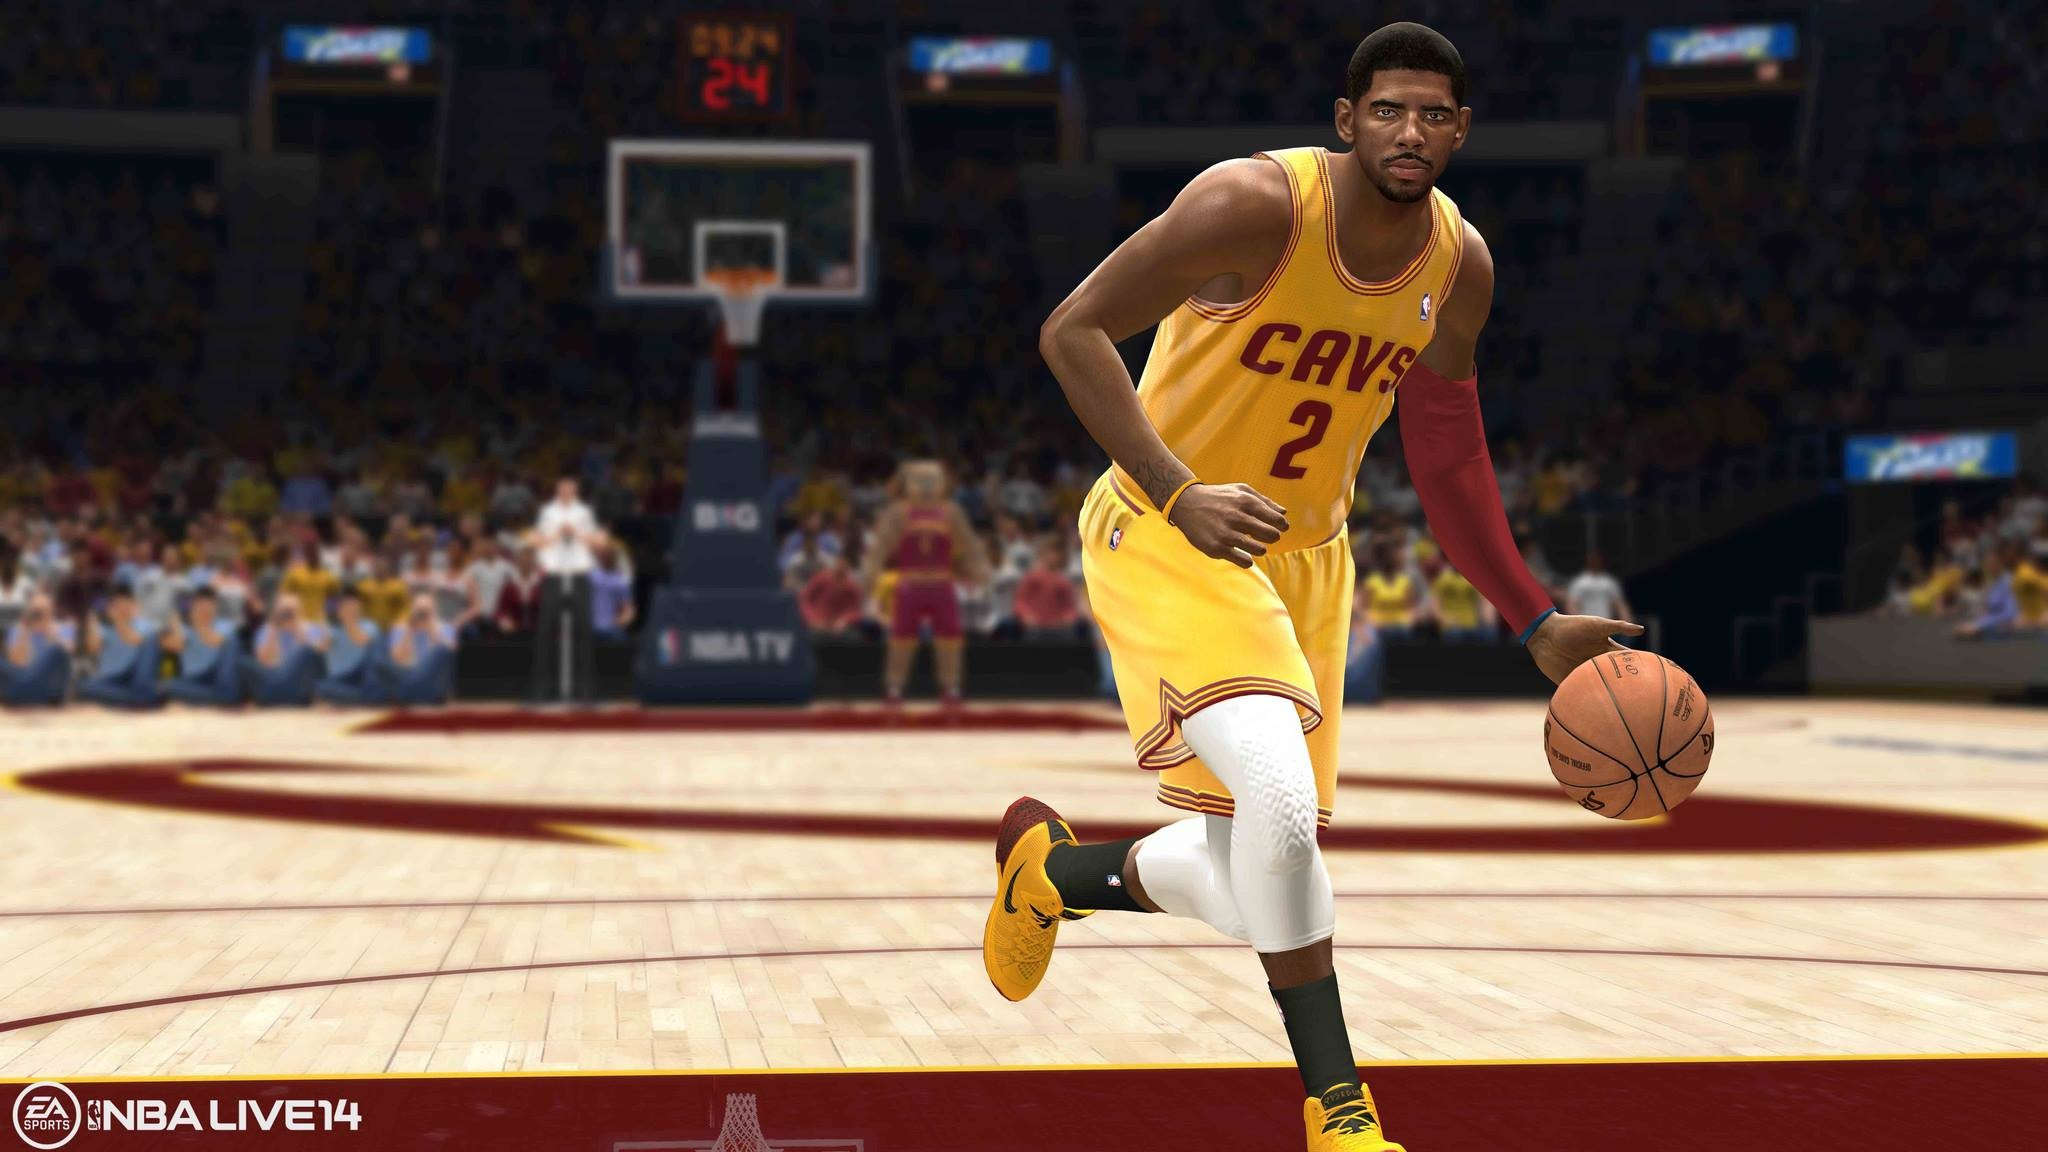 Kyrie - Nba Live 17 Xbox 360 , HD Wallpaper & Backgrounds